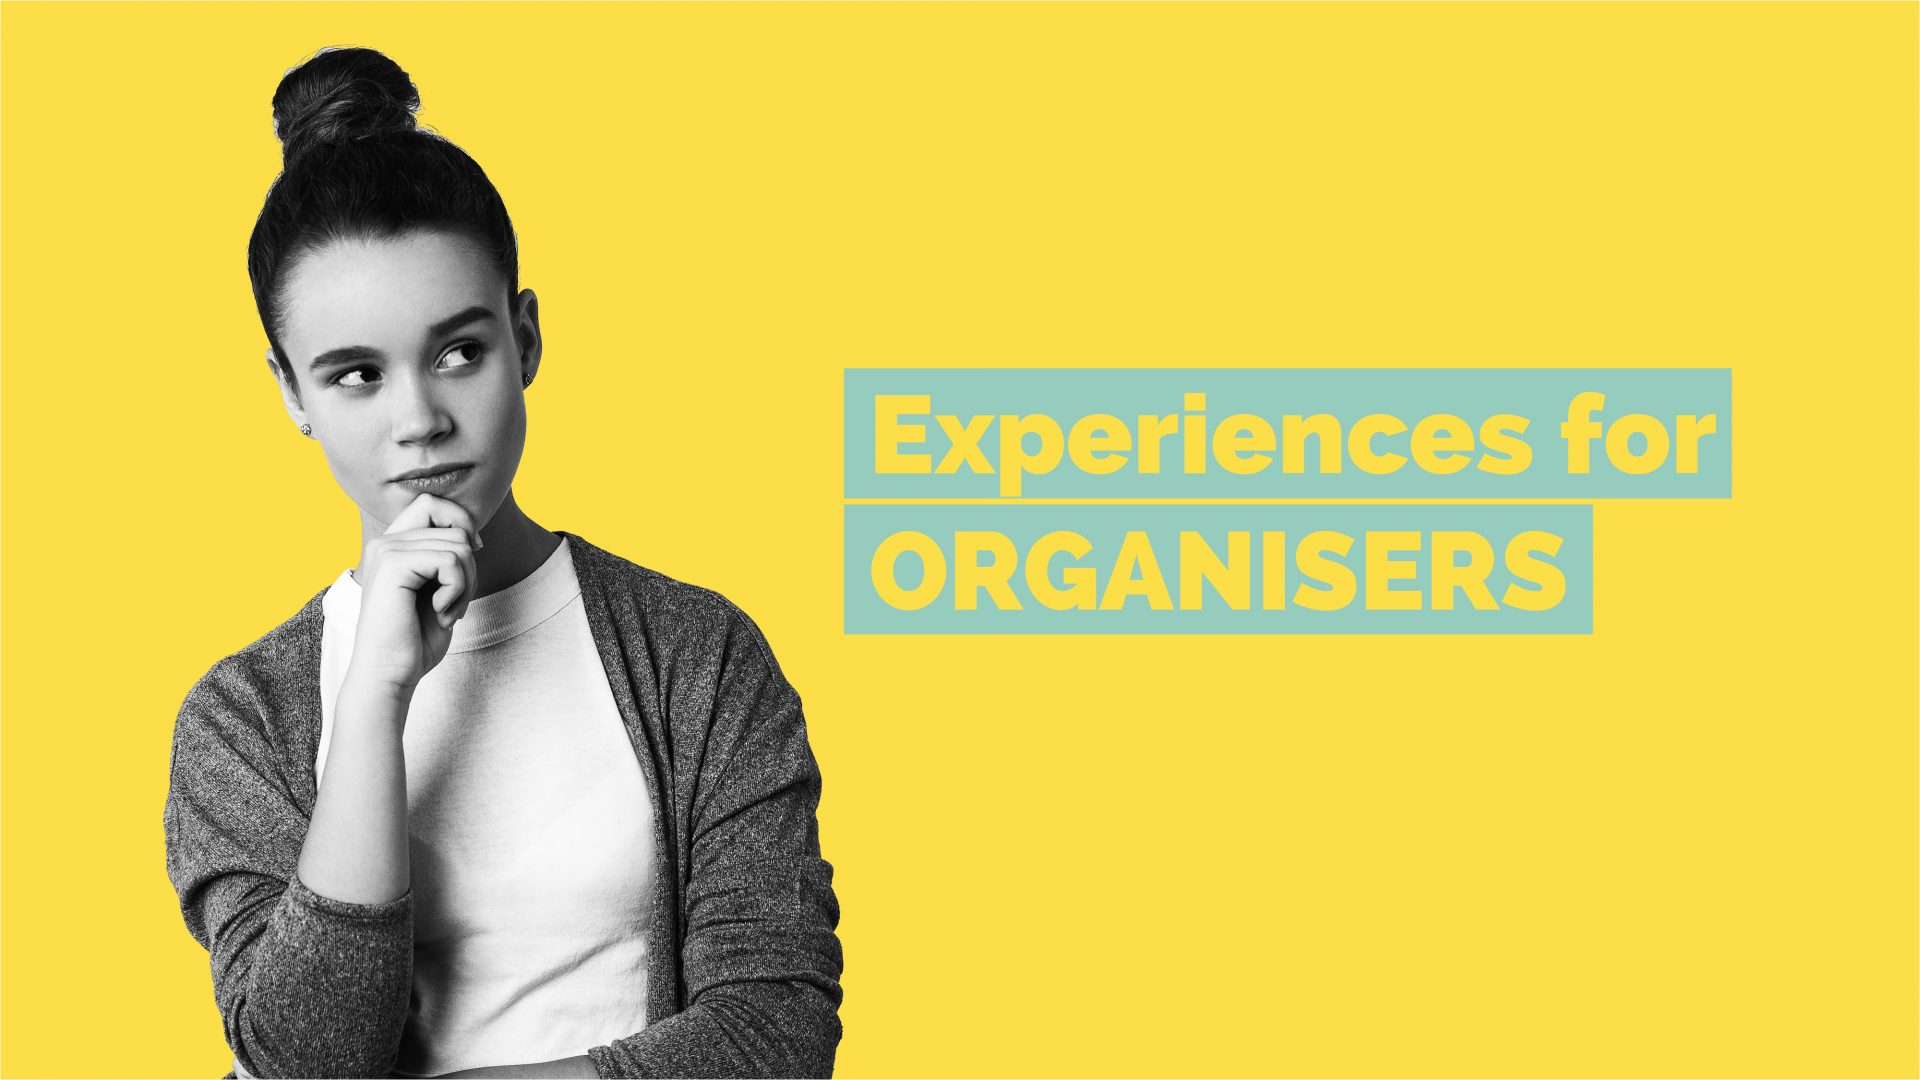 Woman thinking with hand on chin. Text over image says: Experiences for Organisers.